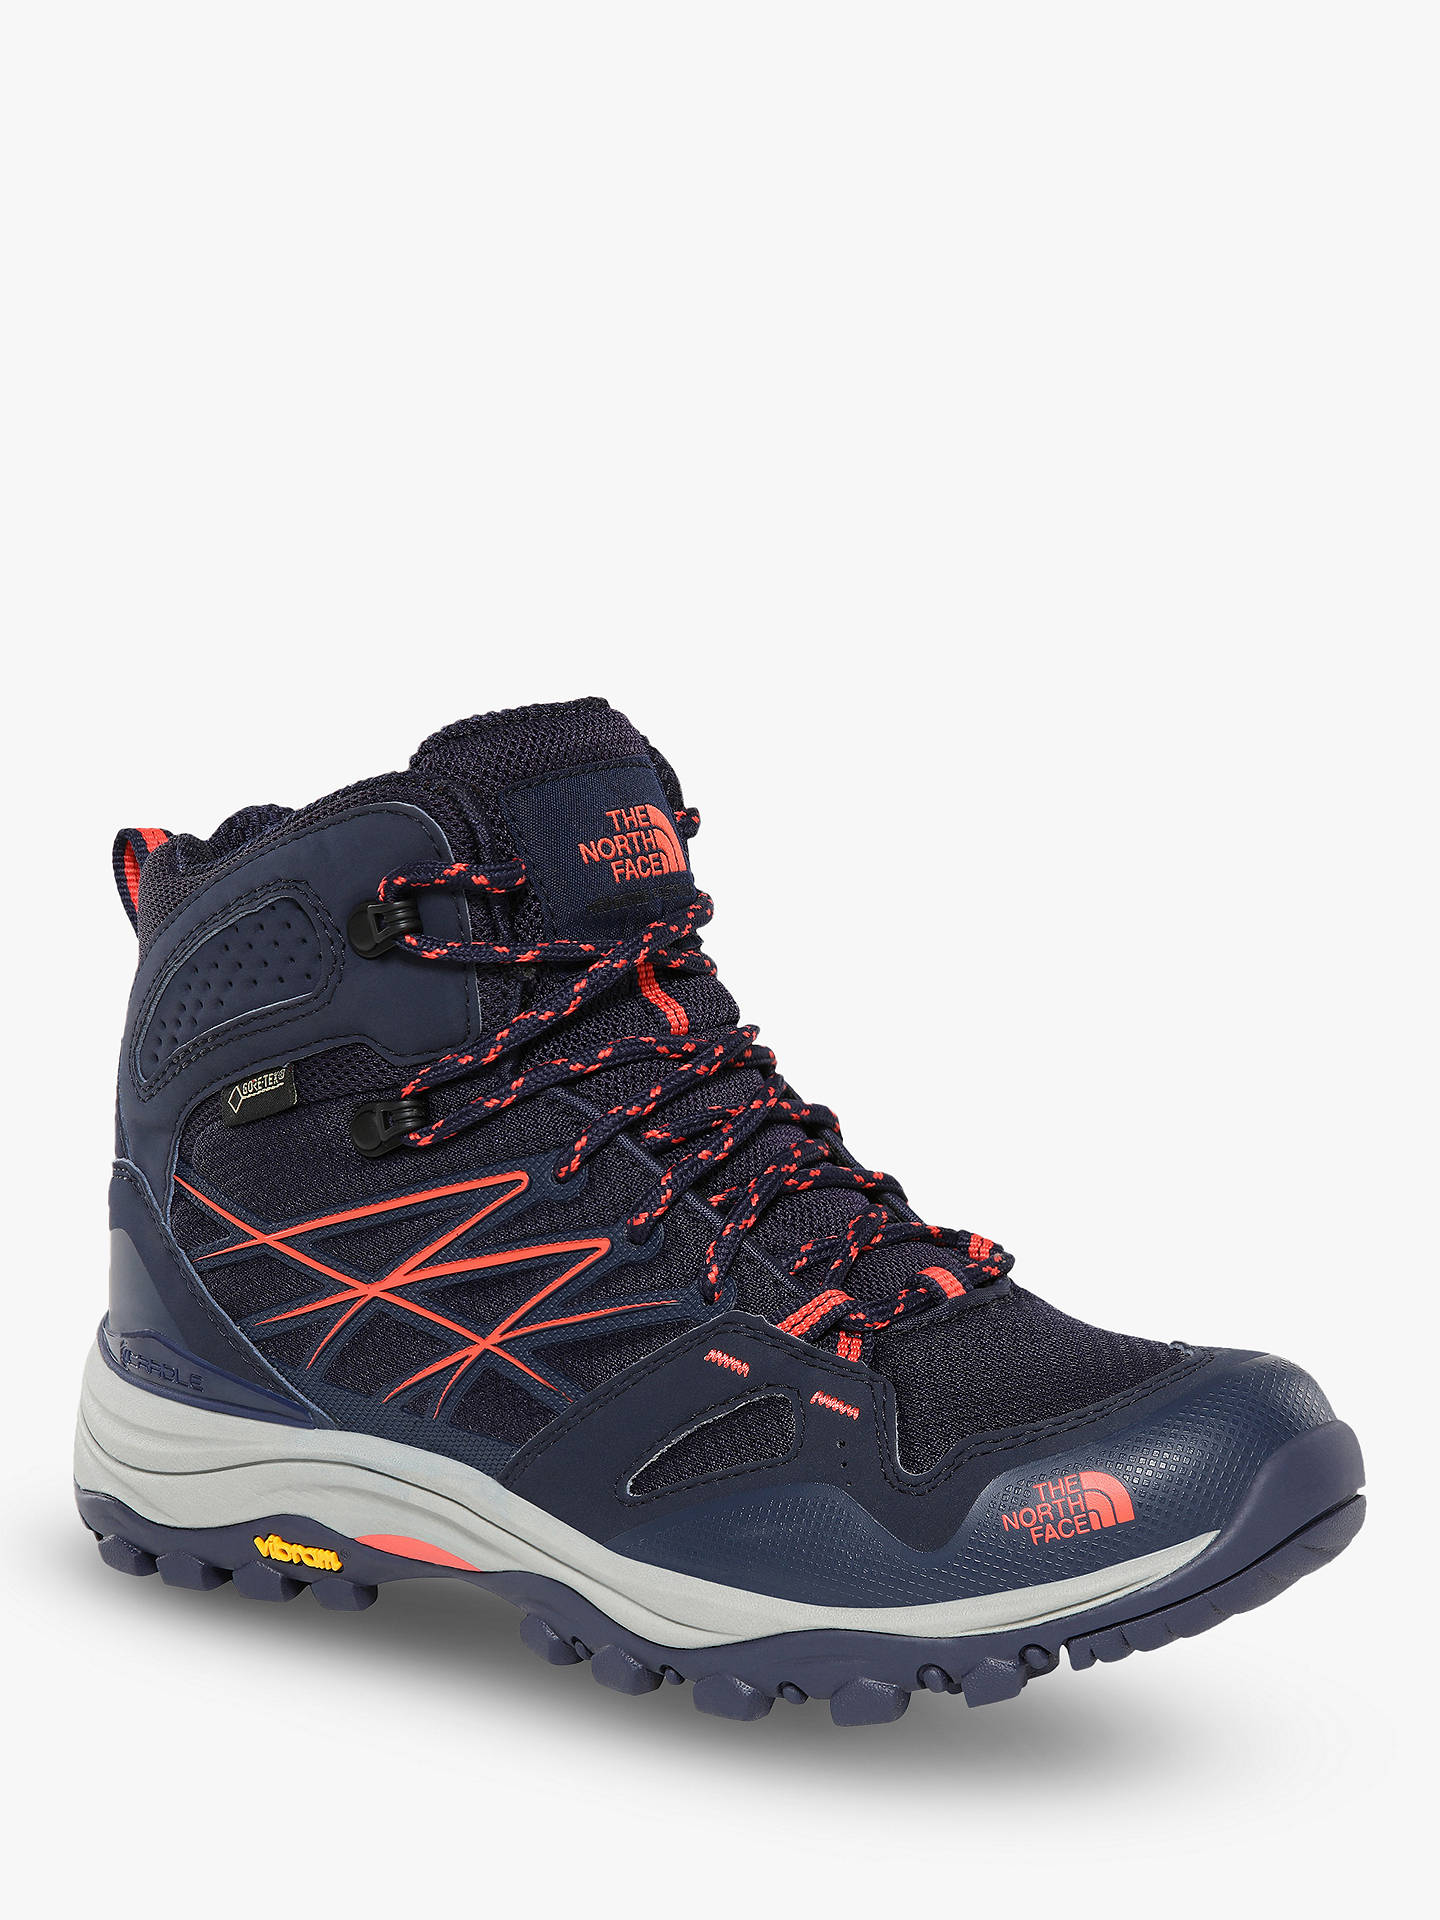 new arrival cda47 e3b31 The North Face Hedgehog Fastpack Mid Women's Waterproof Gore-Tex Hiking  Boots, Peacoat Navy/Radiant Orange